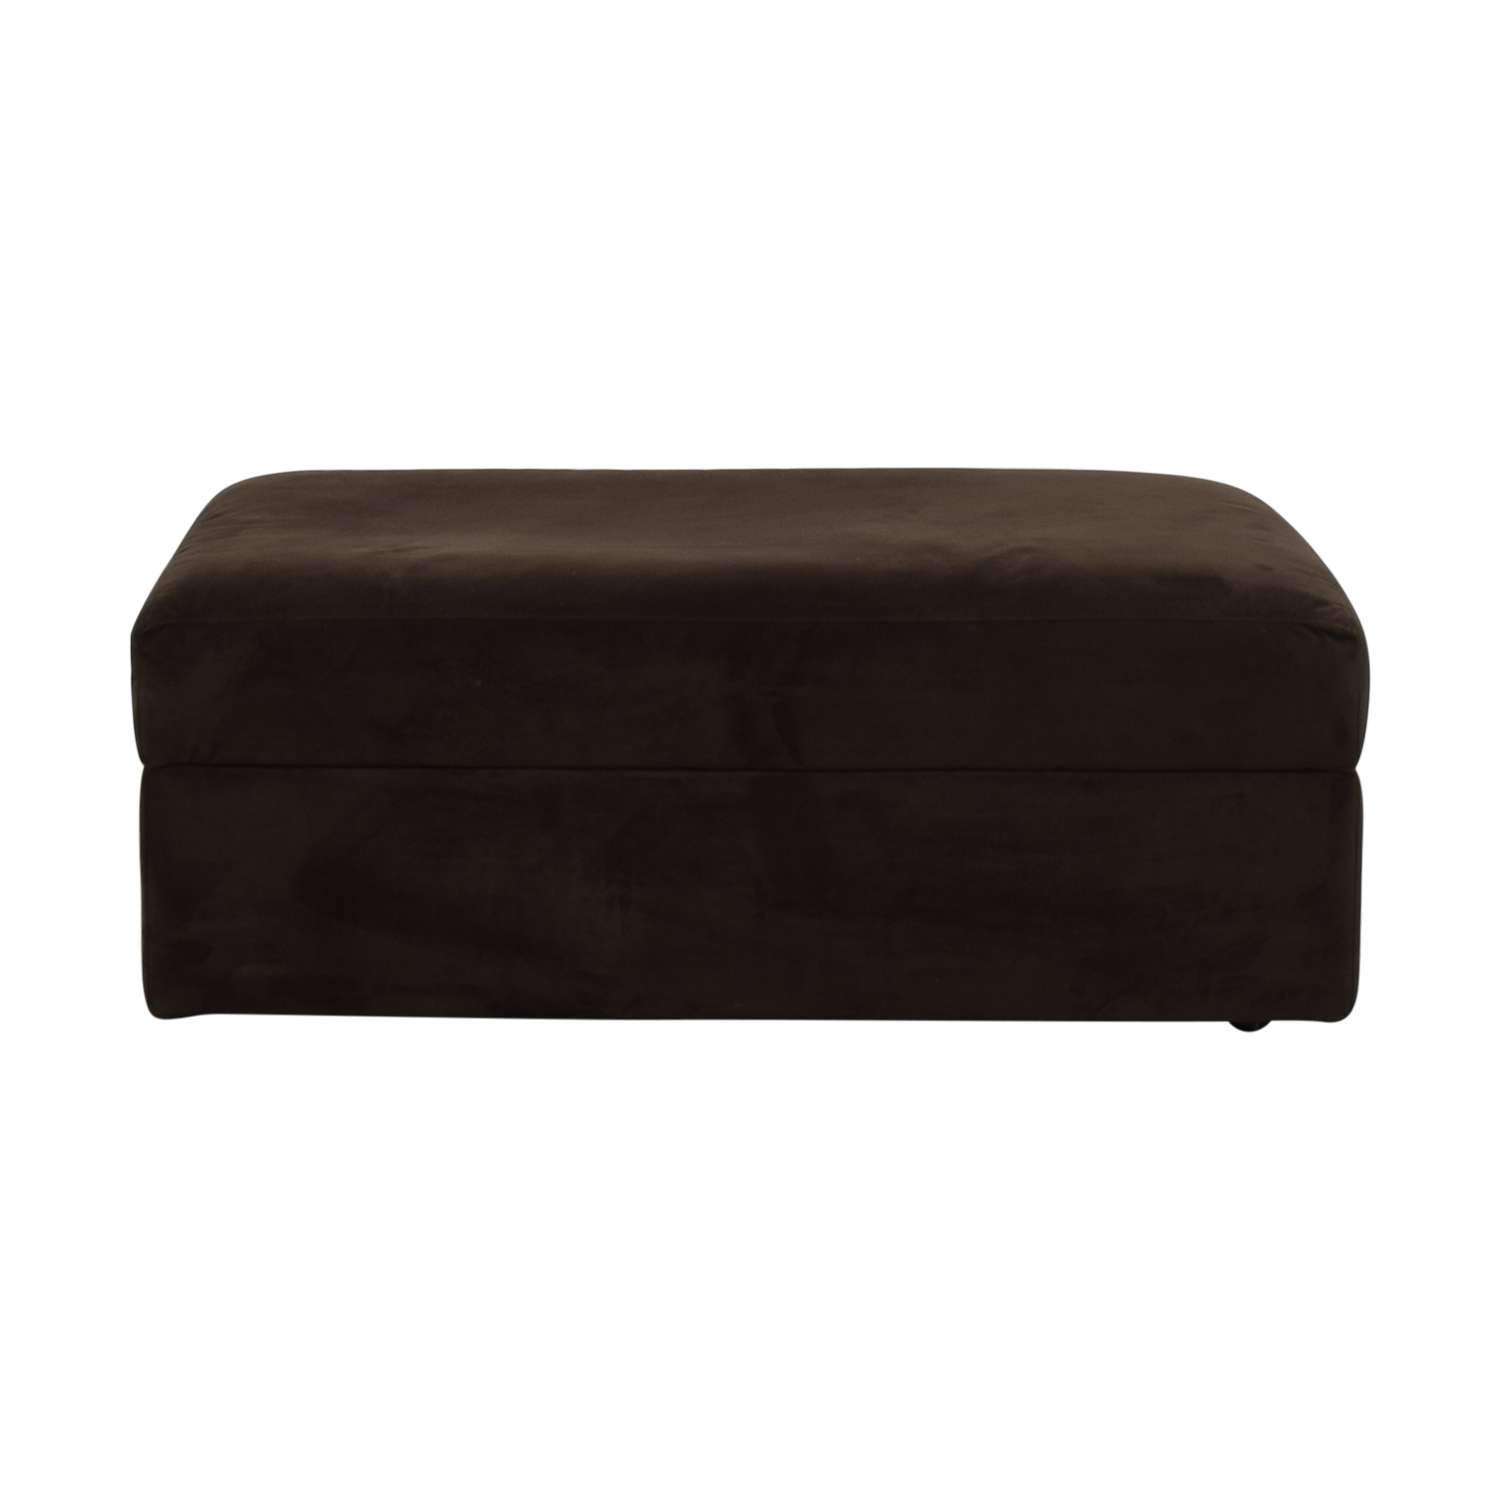 Crate & Barrel Crate & Barrel Storage Ottoman nj